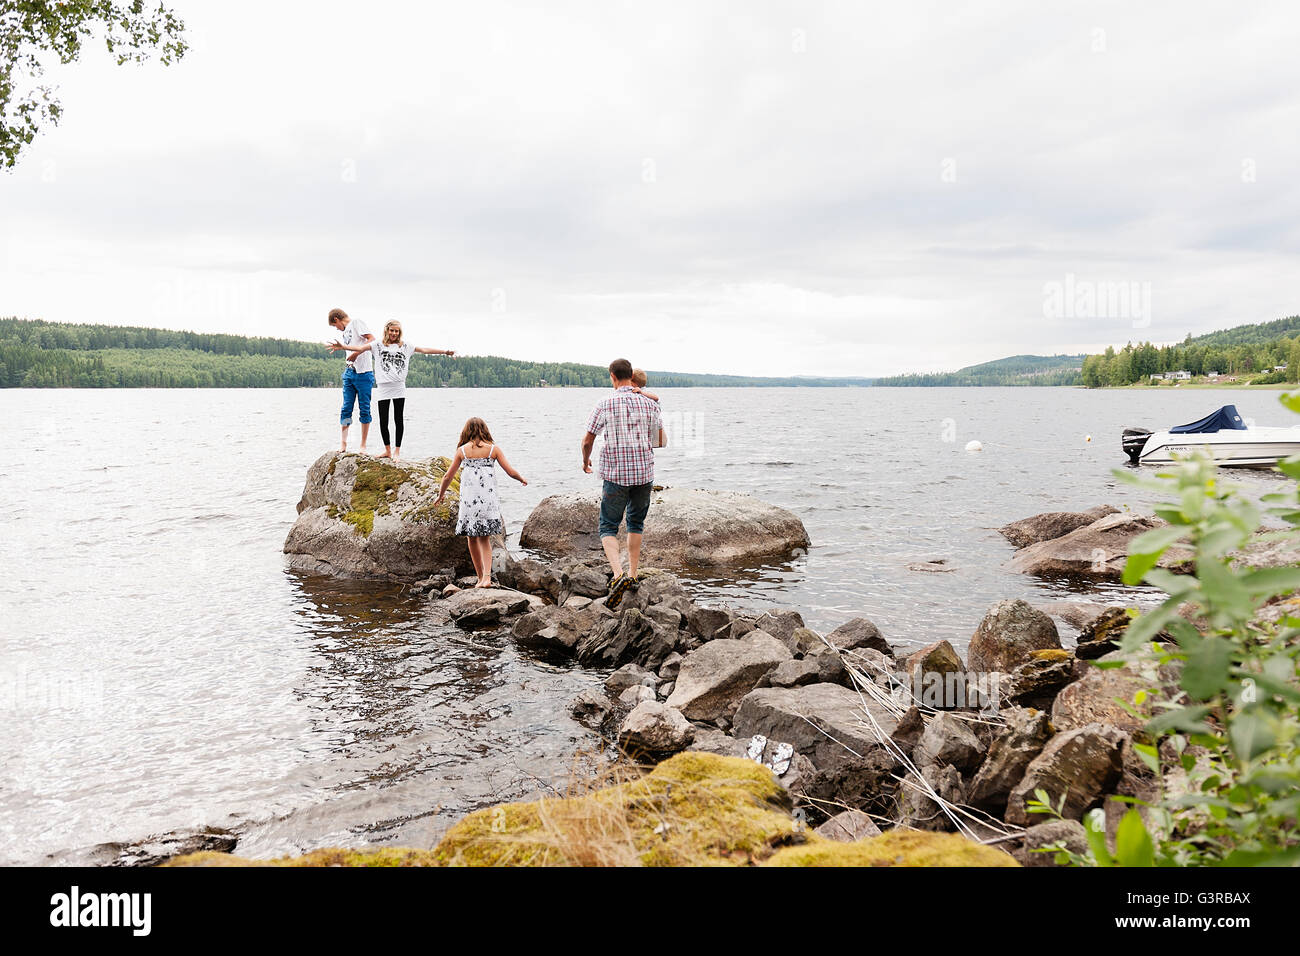 Sweden, Vastmanland, Bergslagen, Hallefors, Nygard, Family with four children standing on rocks - Stock Image